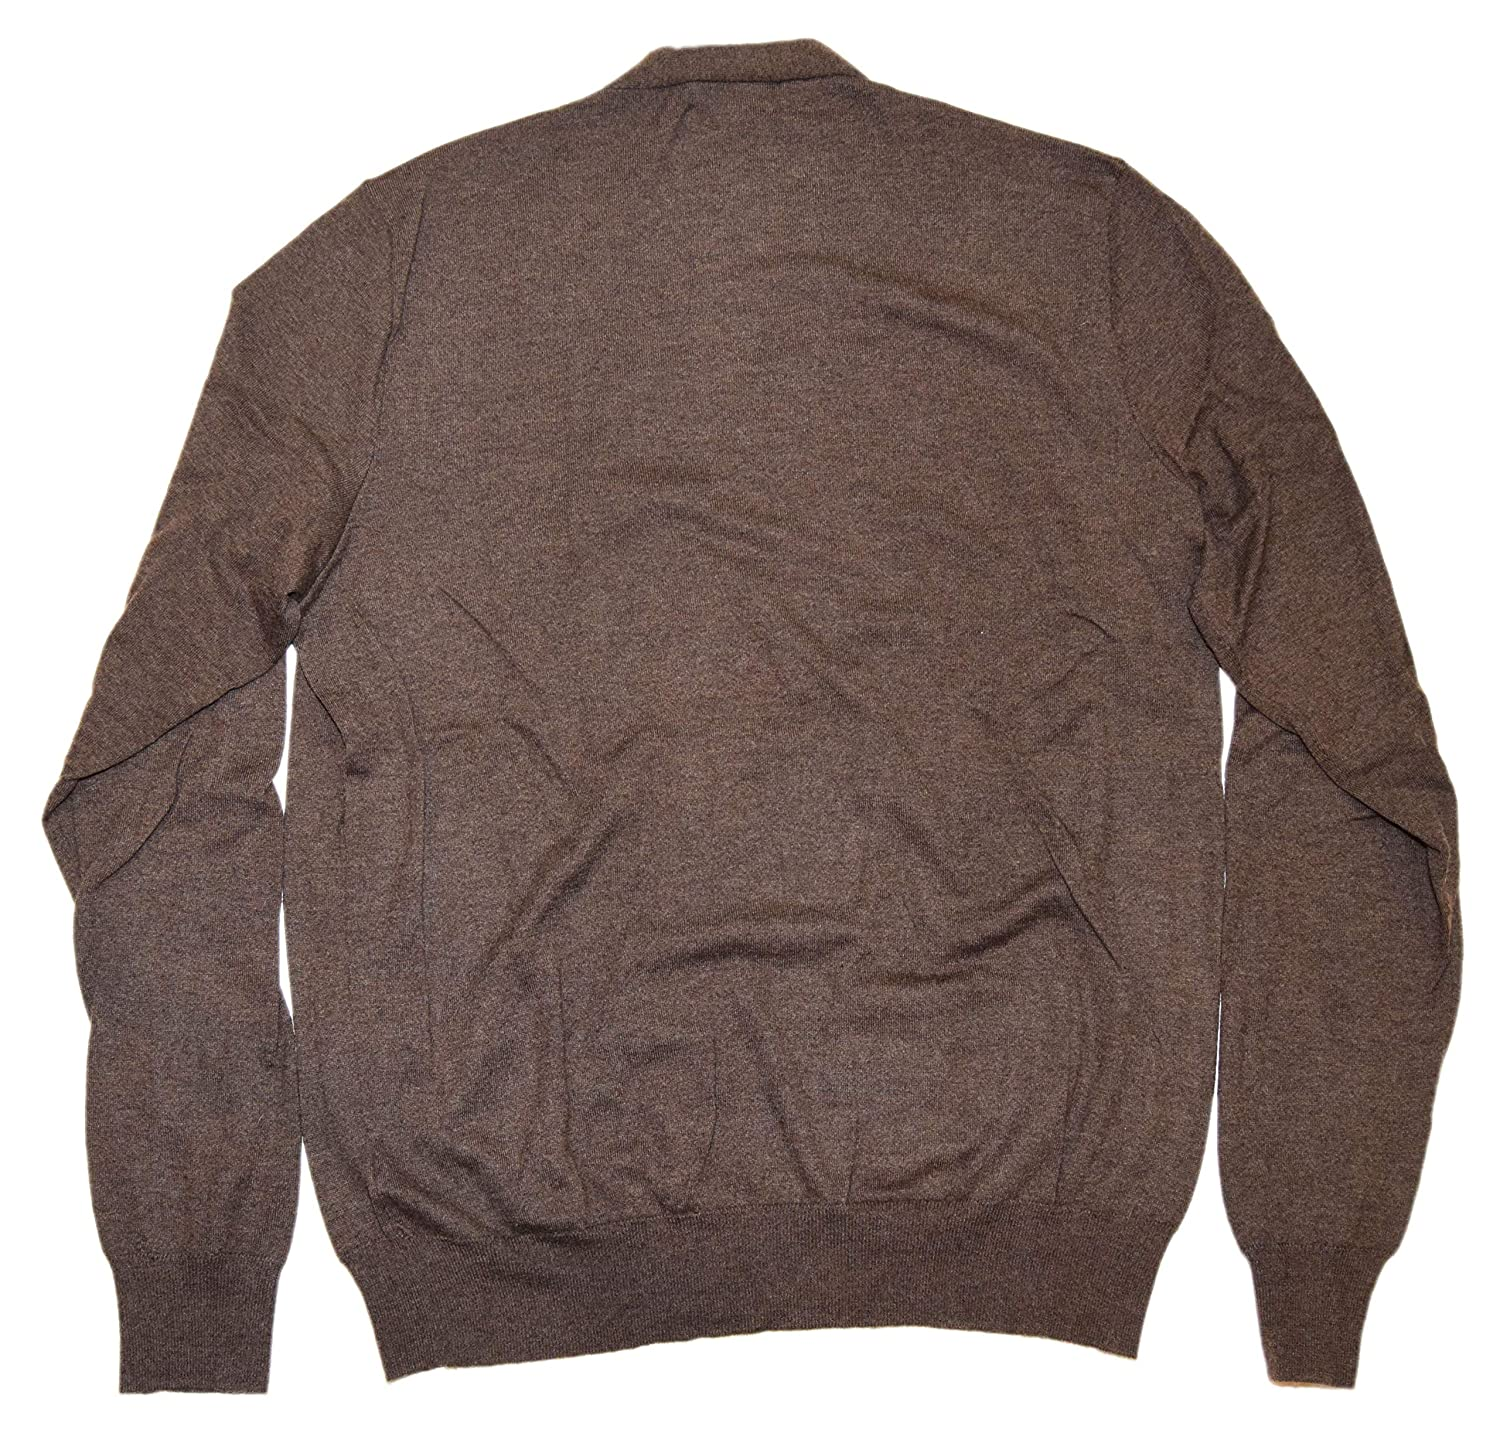 420e79909a5282 Ralph Lauren Purple Label Mens Cardigan Fine Cashmere Sweater Italy Brown  Large at Amazon Men's Clothing store: Pullover Sweaters